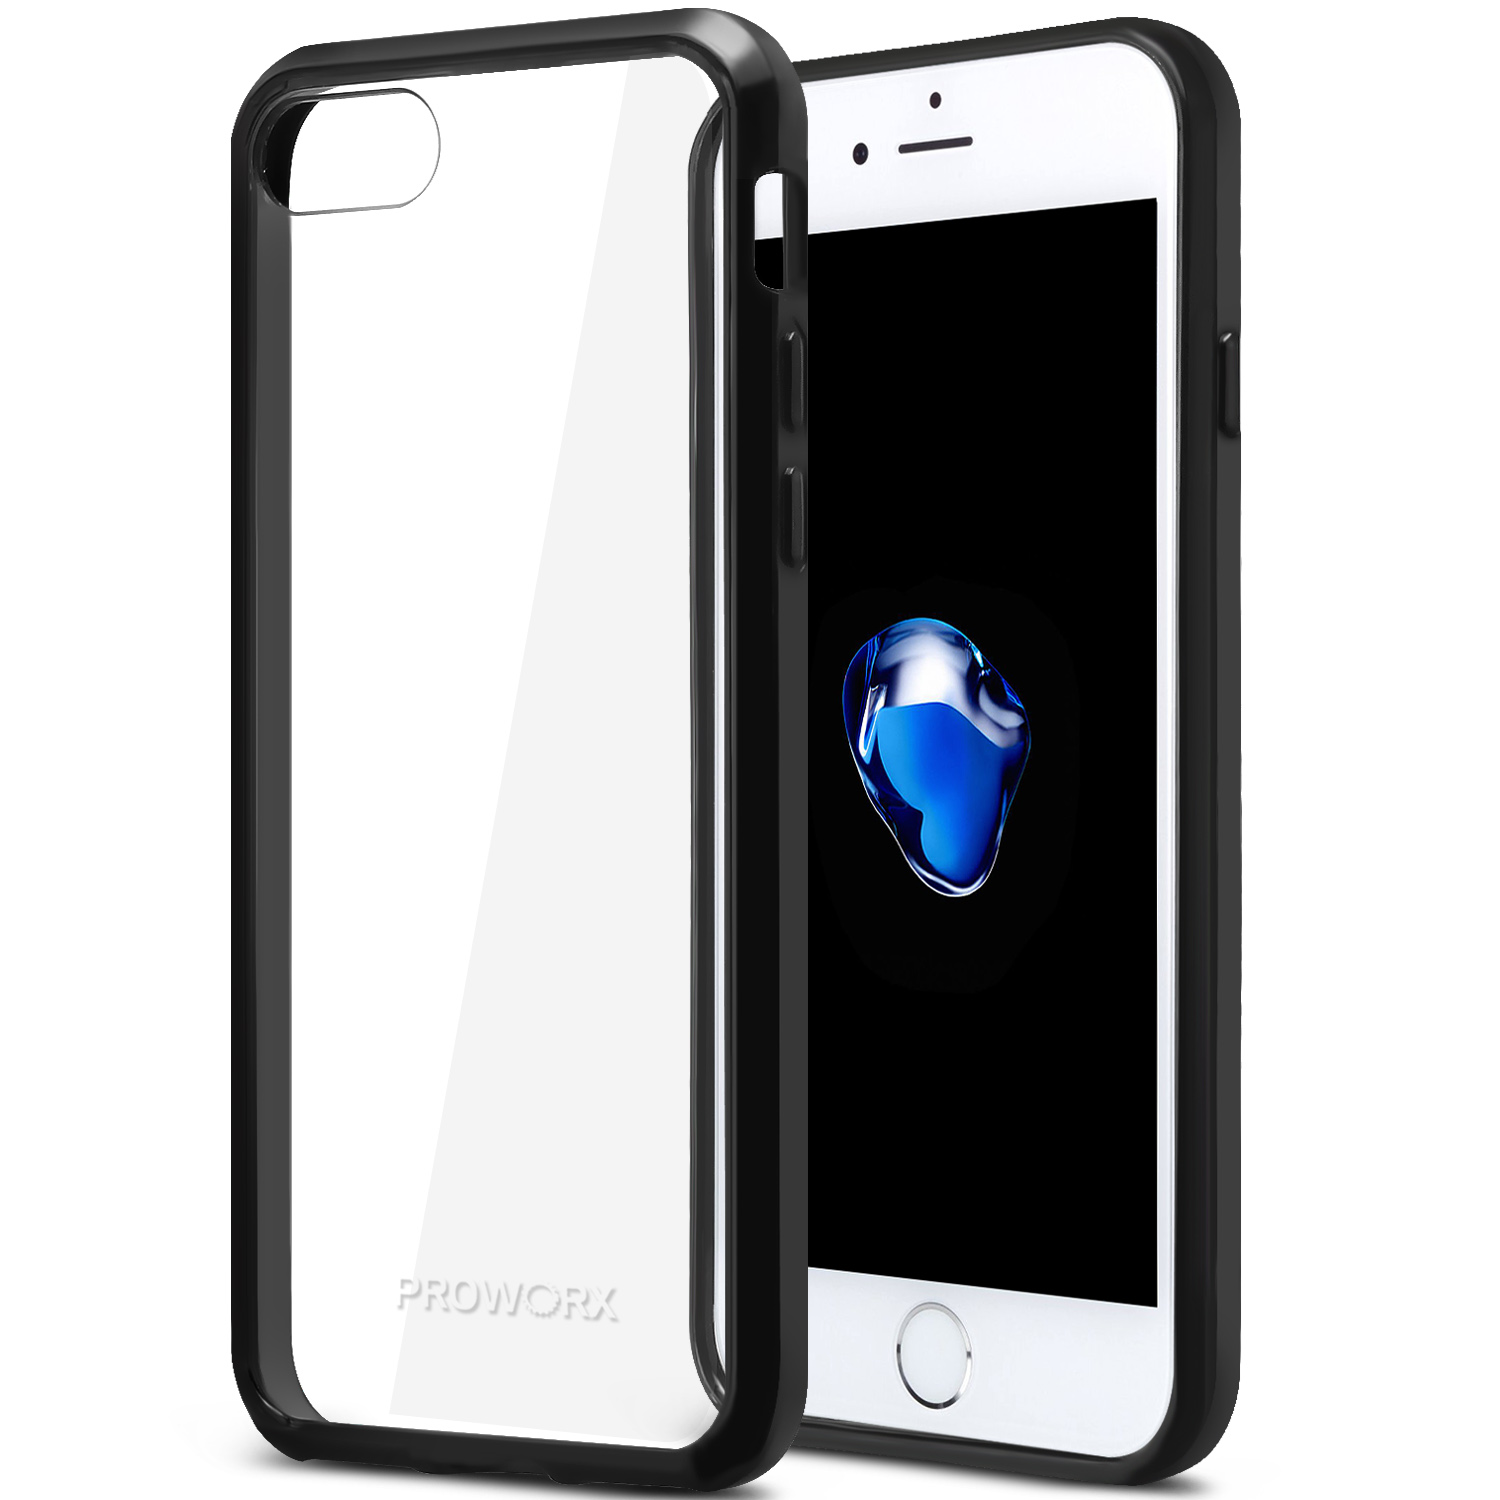 Apple iPhone 6 6S (4.7) Black ProWorx Shock Absorption Case Bumper TPU & Anti-Scratch Clear Back Cover